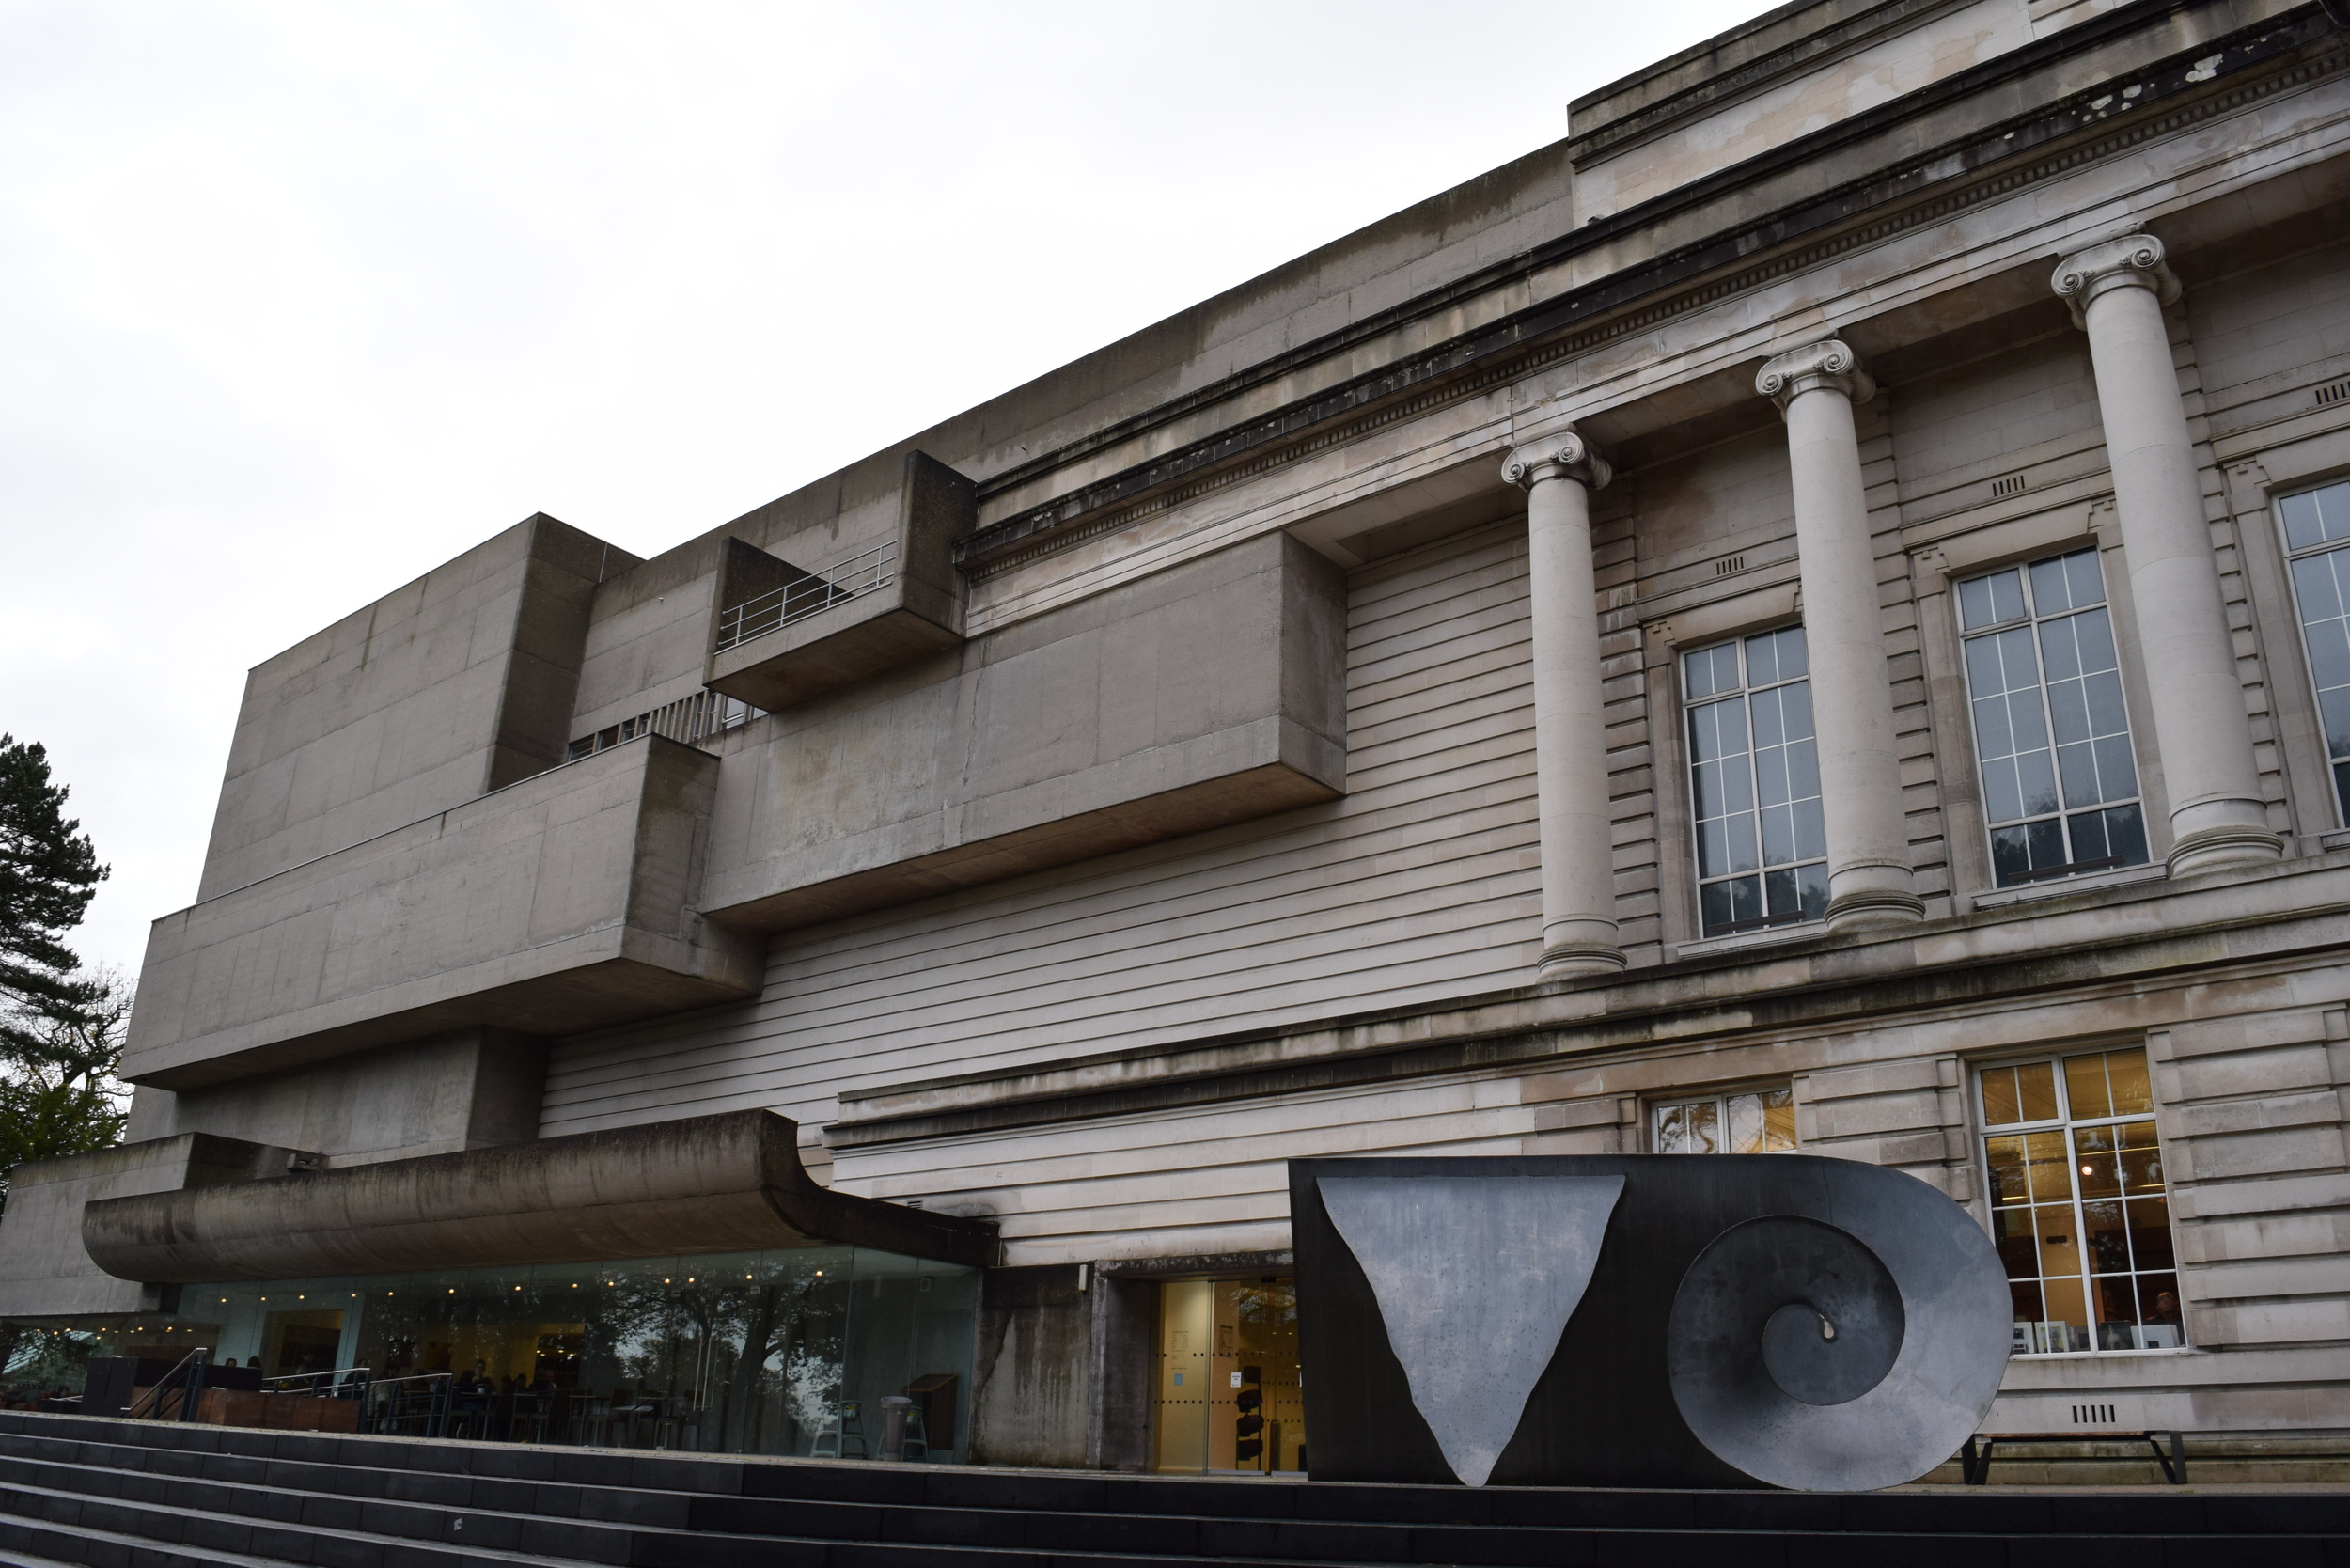 The facade of the Ulster Museum- notice the bizarre meshing of architectural styles. The original building was constructed in the 1920s, while the brutalist extension was completed in the 1960s.